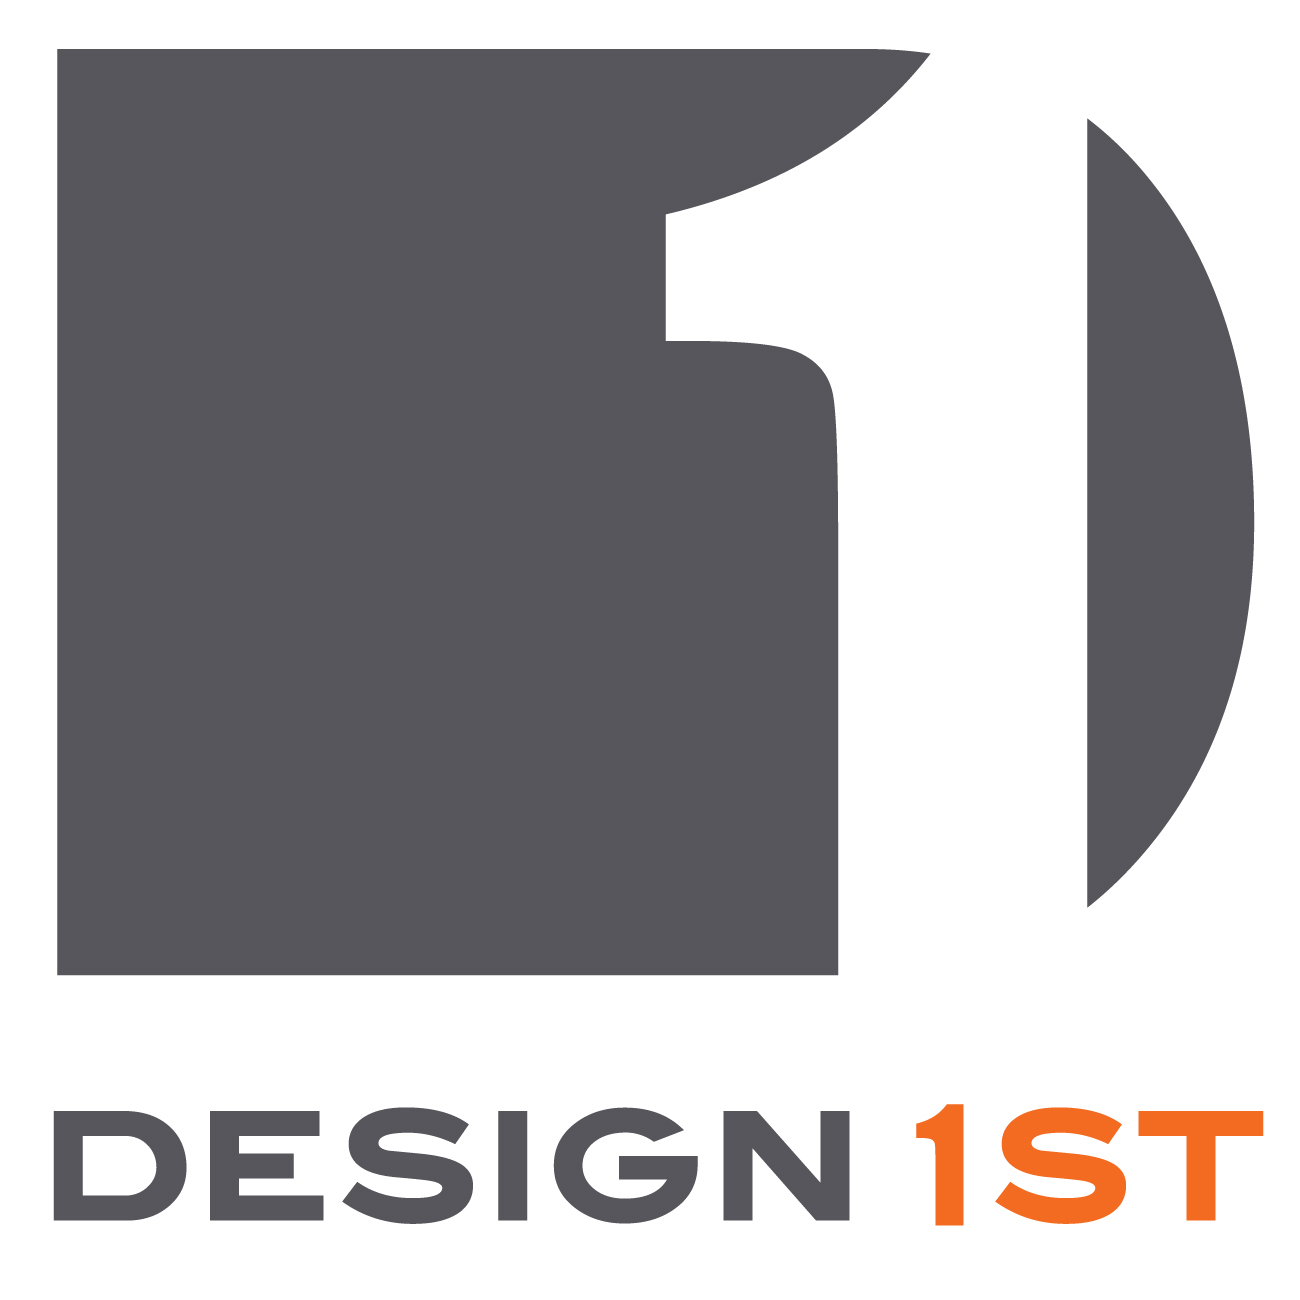 Design 1st Named to Clutch 2020 Top Global Creative & Design Agency Listing